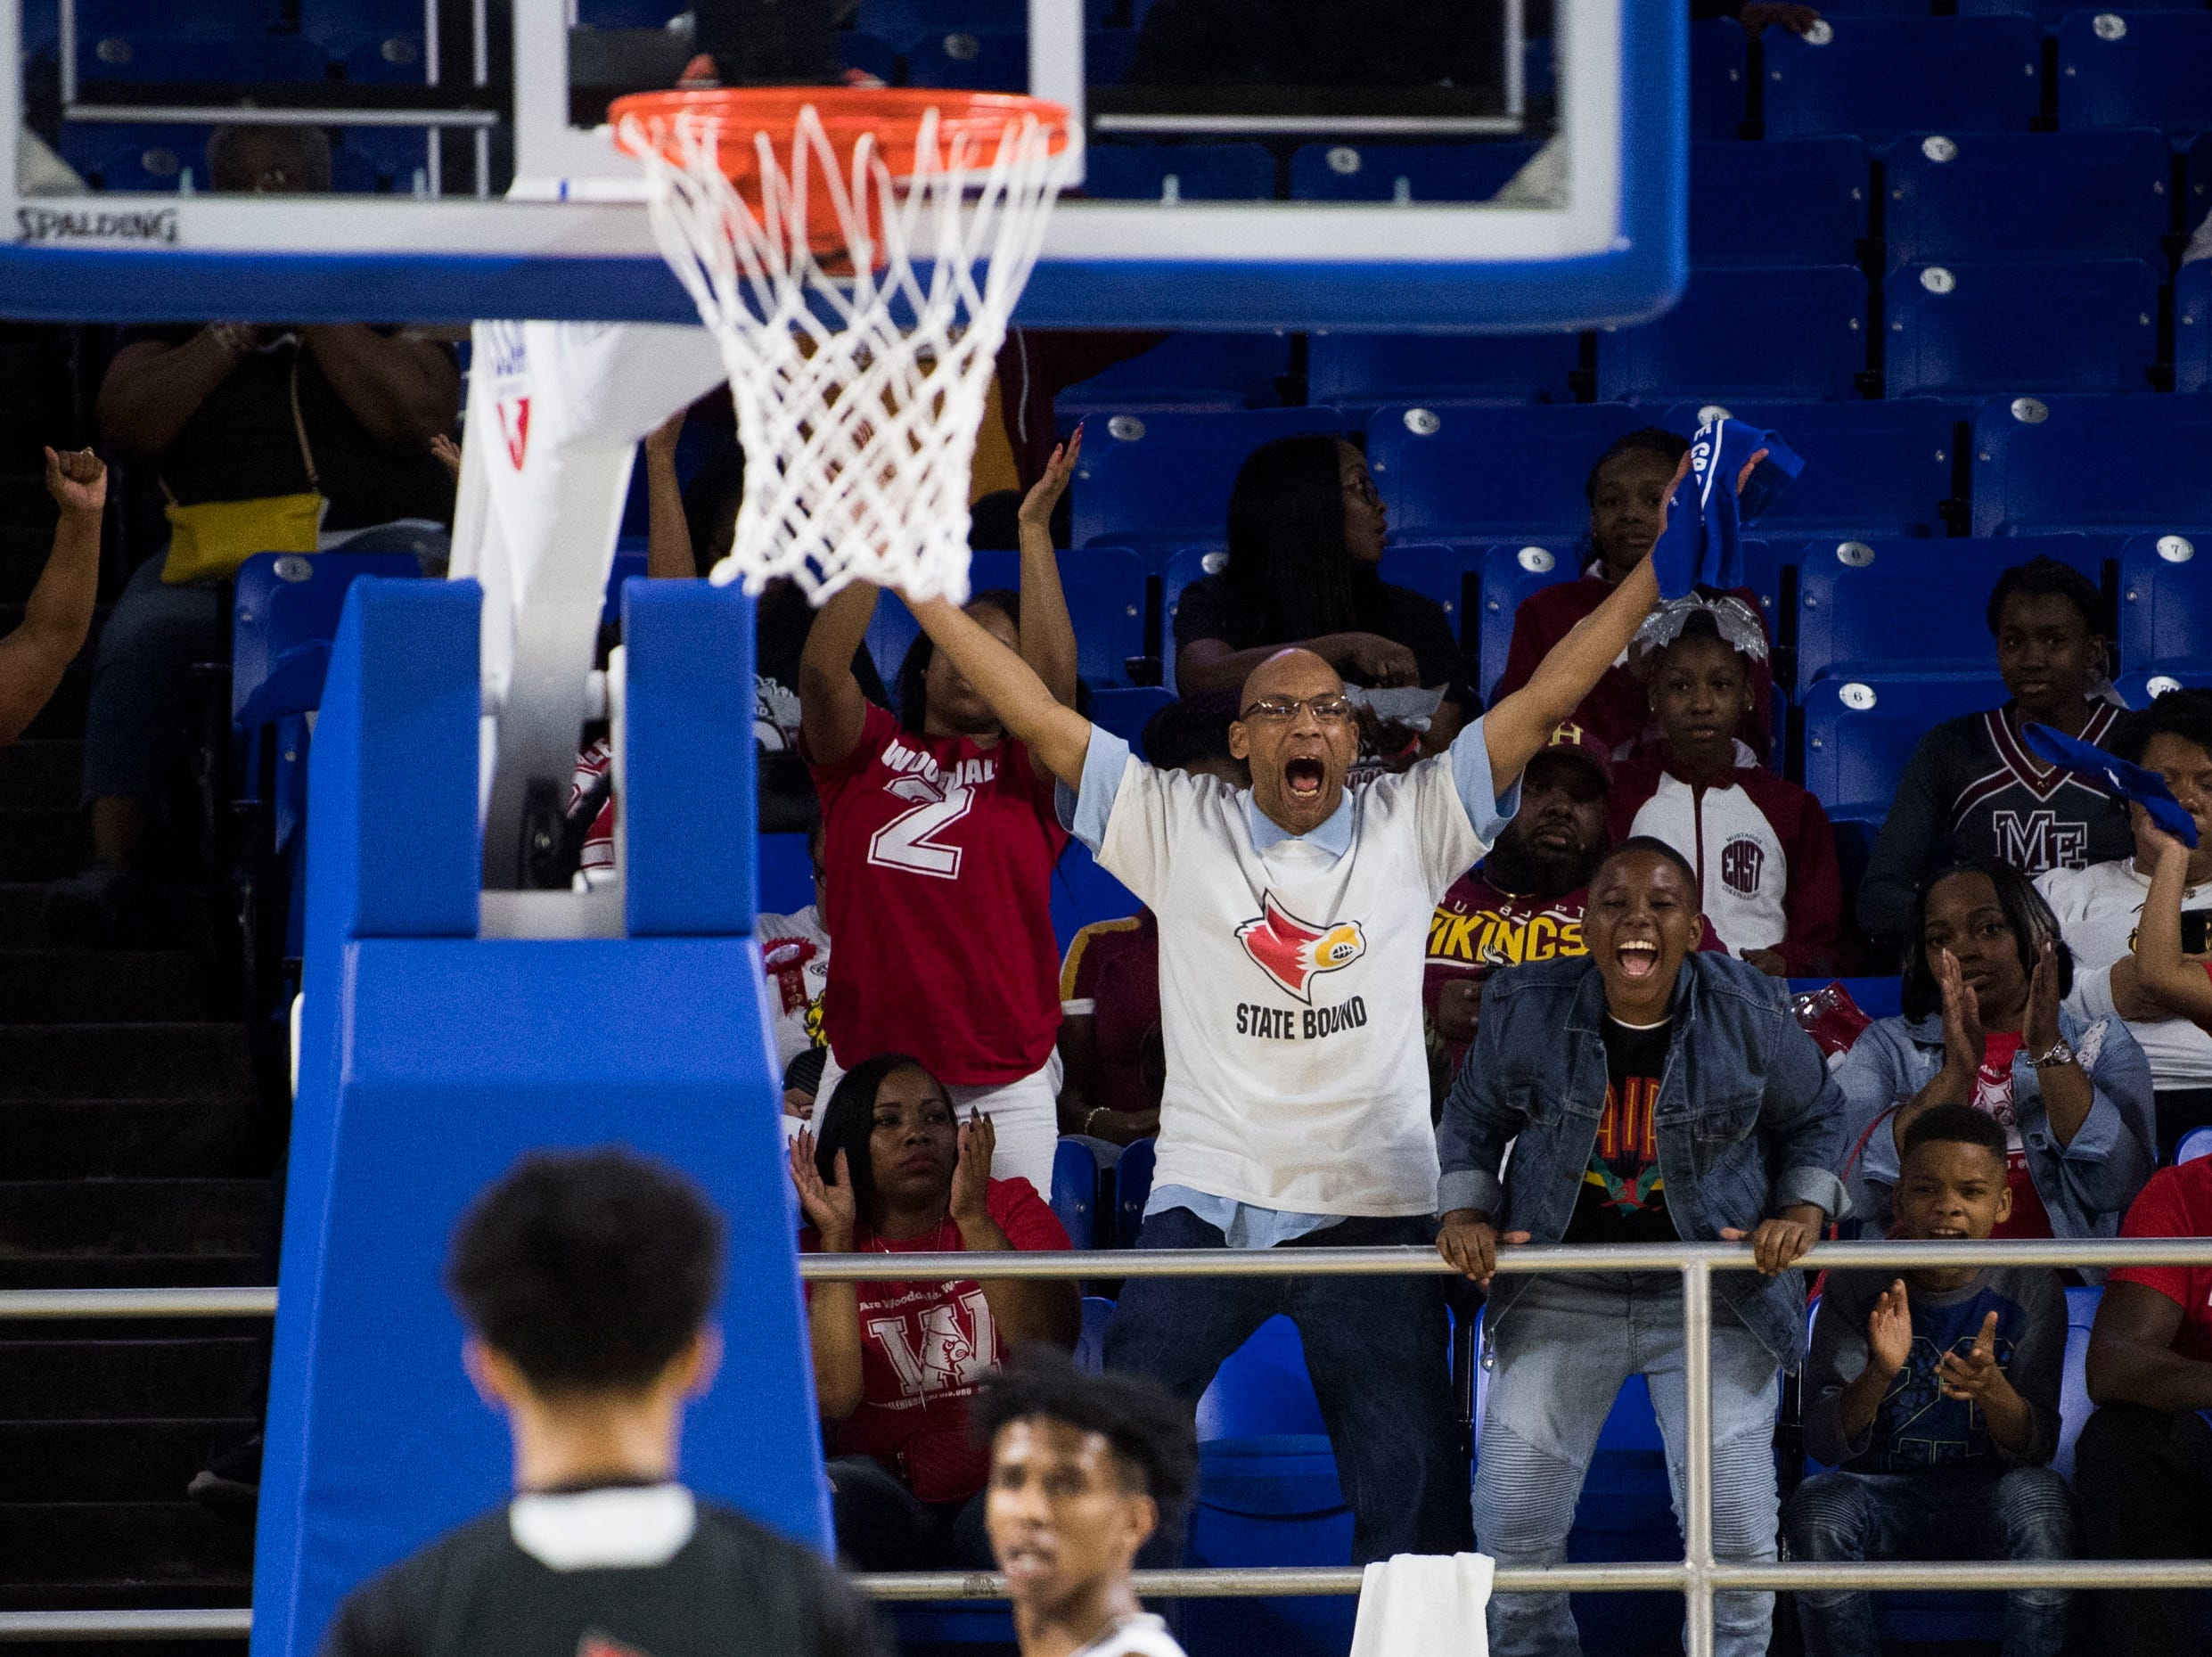 Wooddale fans react to a basket during a TSSAA AA state championship game between Wooddale and Fulton at the Murphy Center in Murfreesboro, Saturday, March 16, 2019.